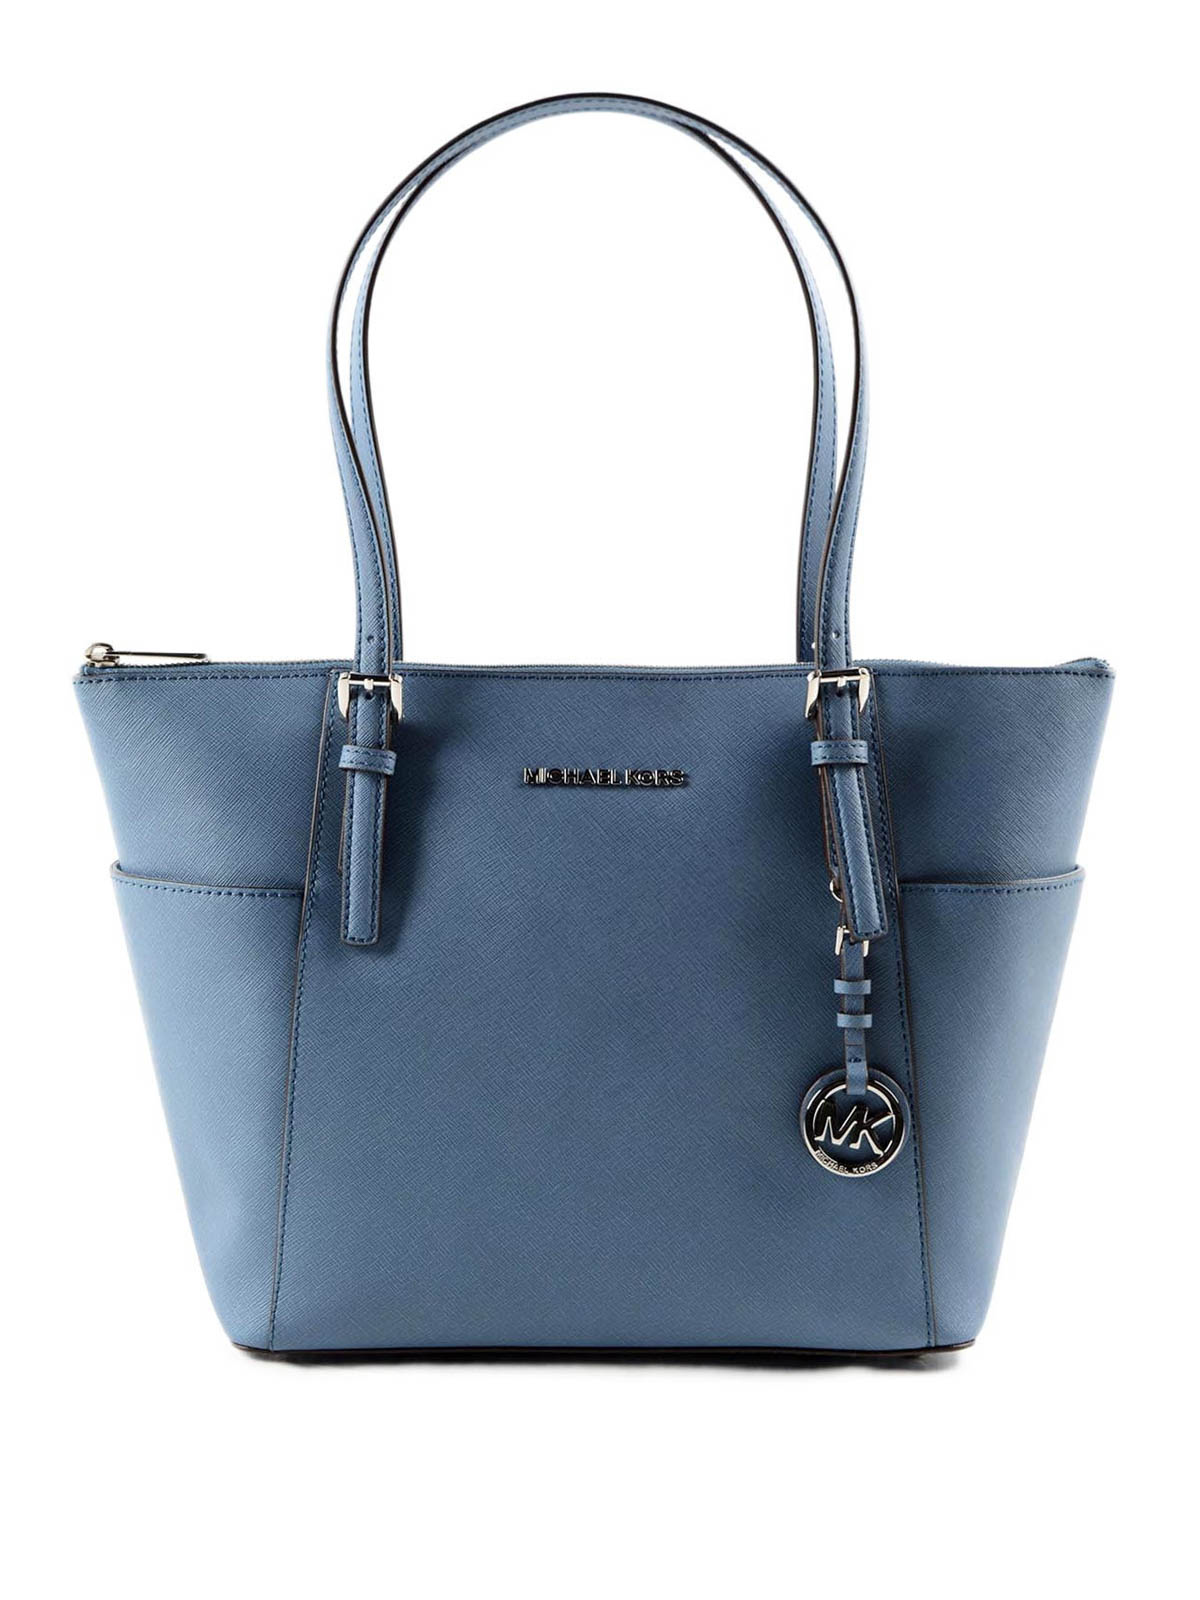 Michael Kors Jet Set Tote Laukku : Jet set saffiano leather tote by michael kors totes bags